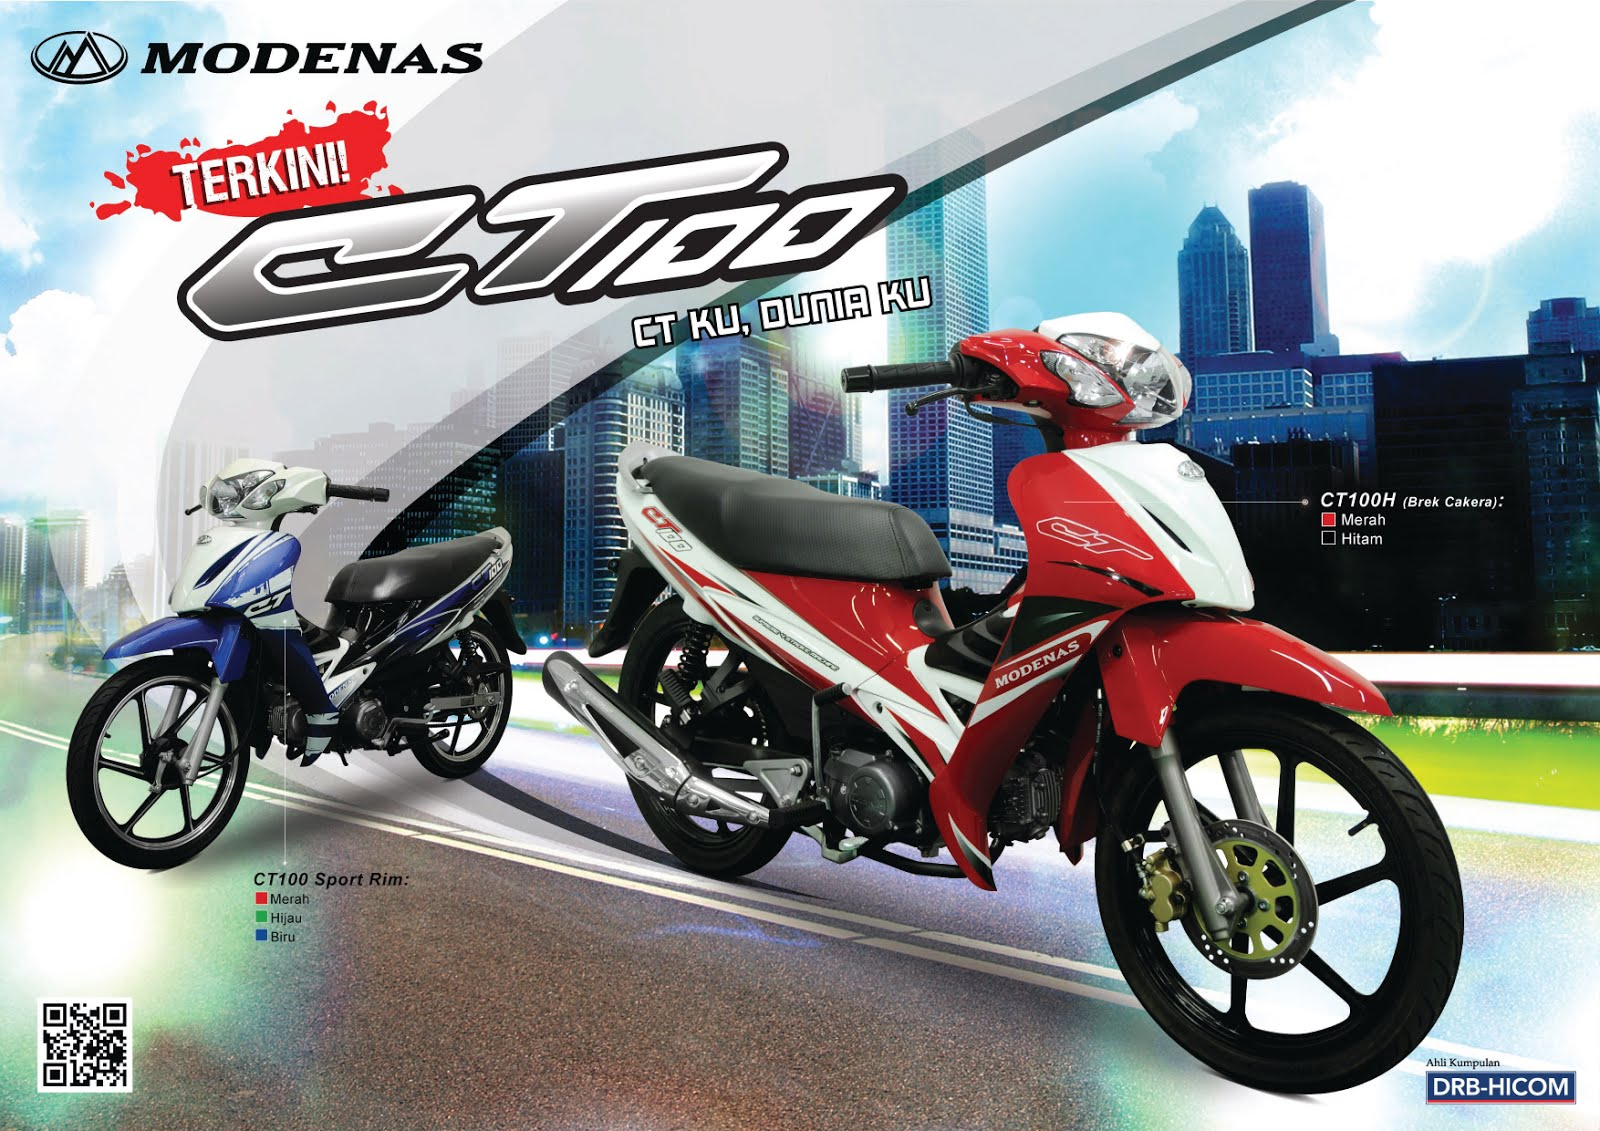 Modenas ct100 photo - 6